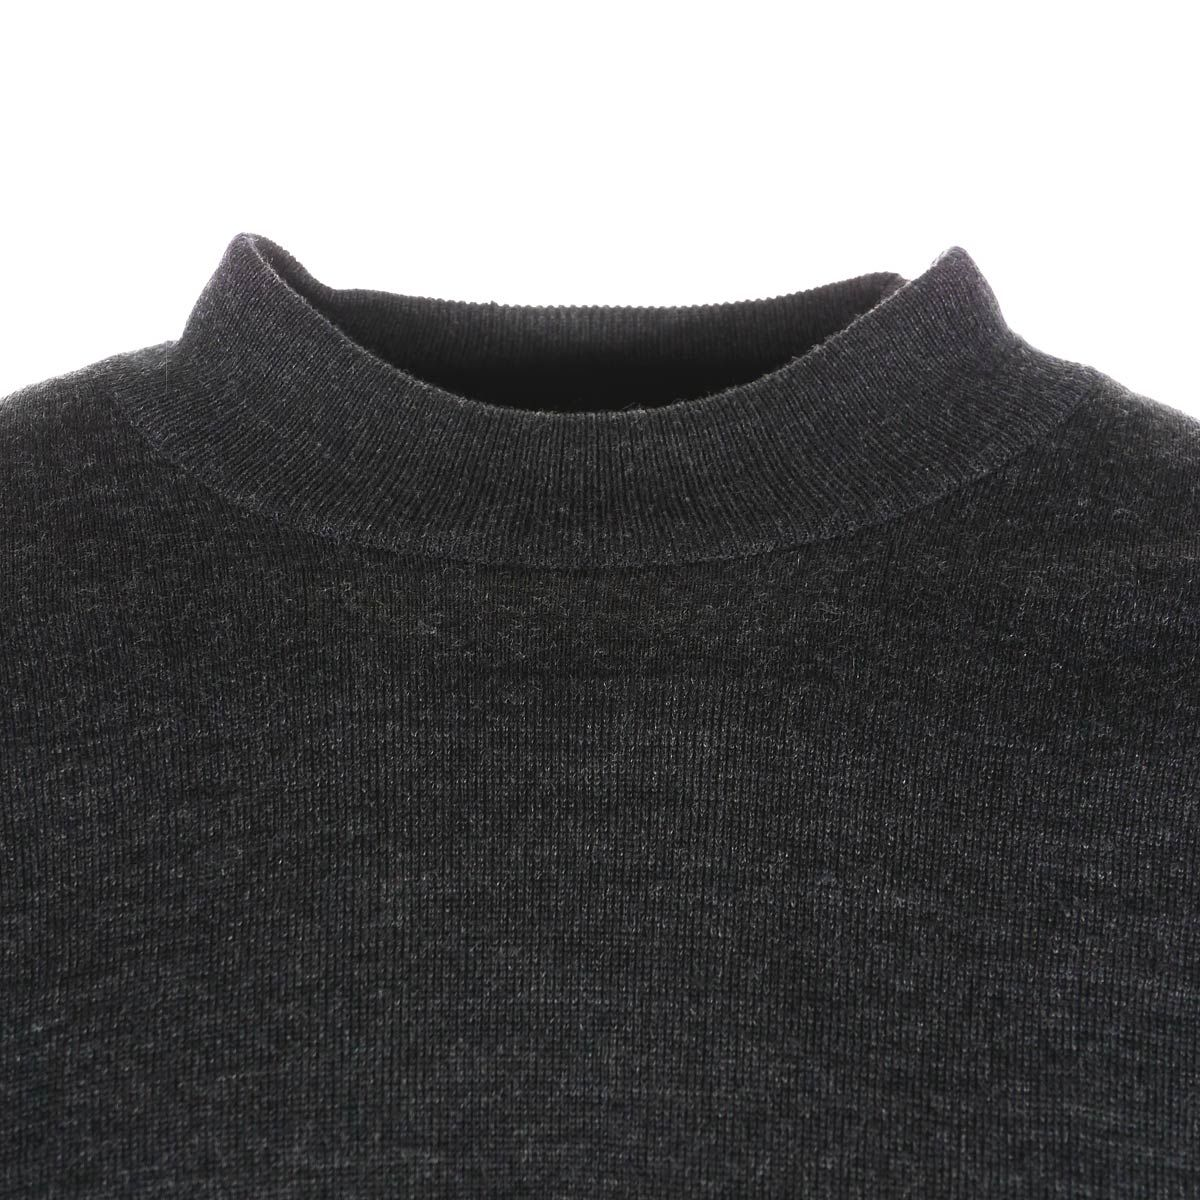 Size factory mode monte carlo - Pull col cheminee pour homme ...